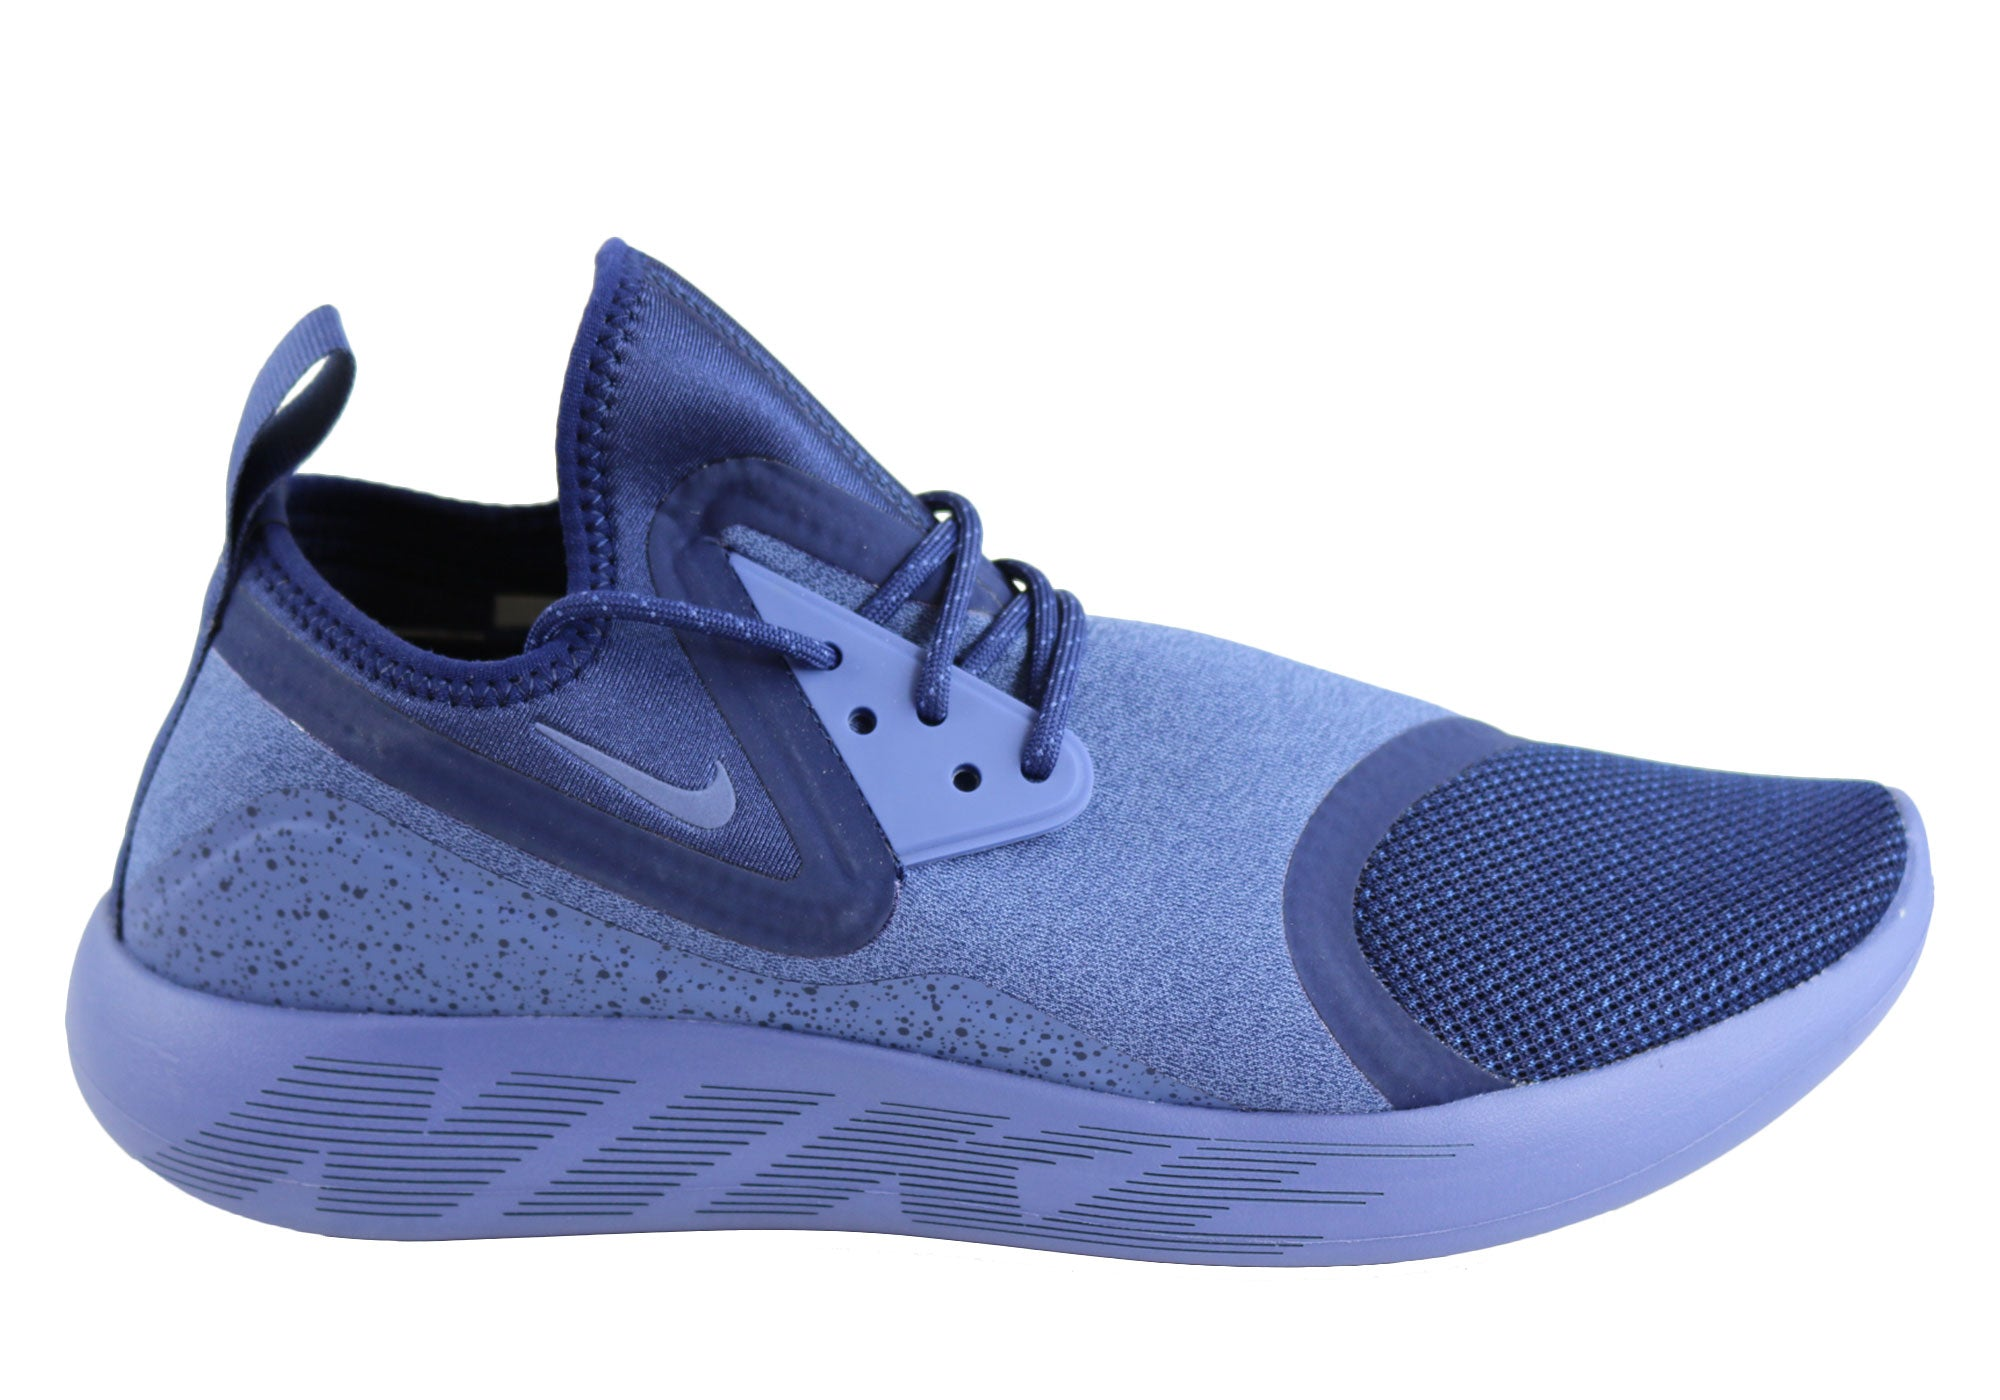 9a85d5d5c4e8 Nike Mens Lunarcharge Essential Comfortable Athletic Trainers Shoes ...